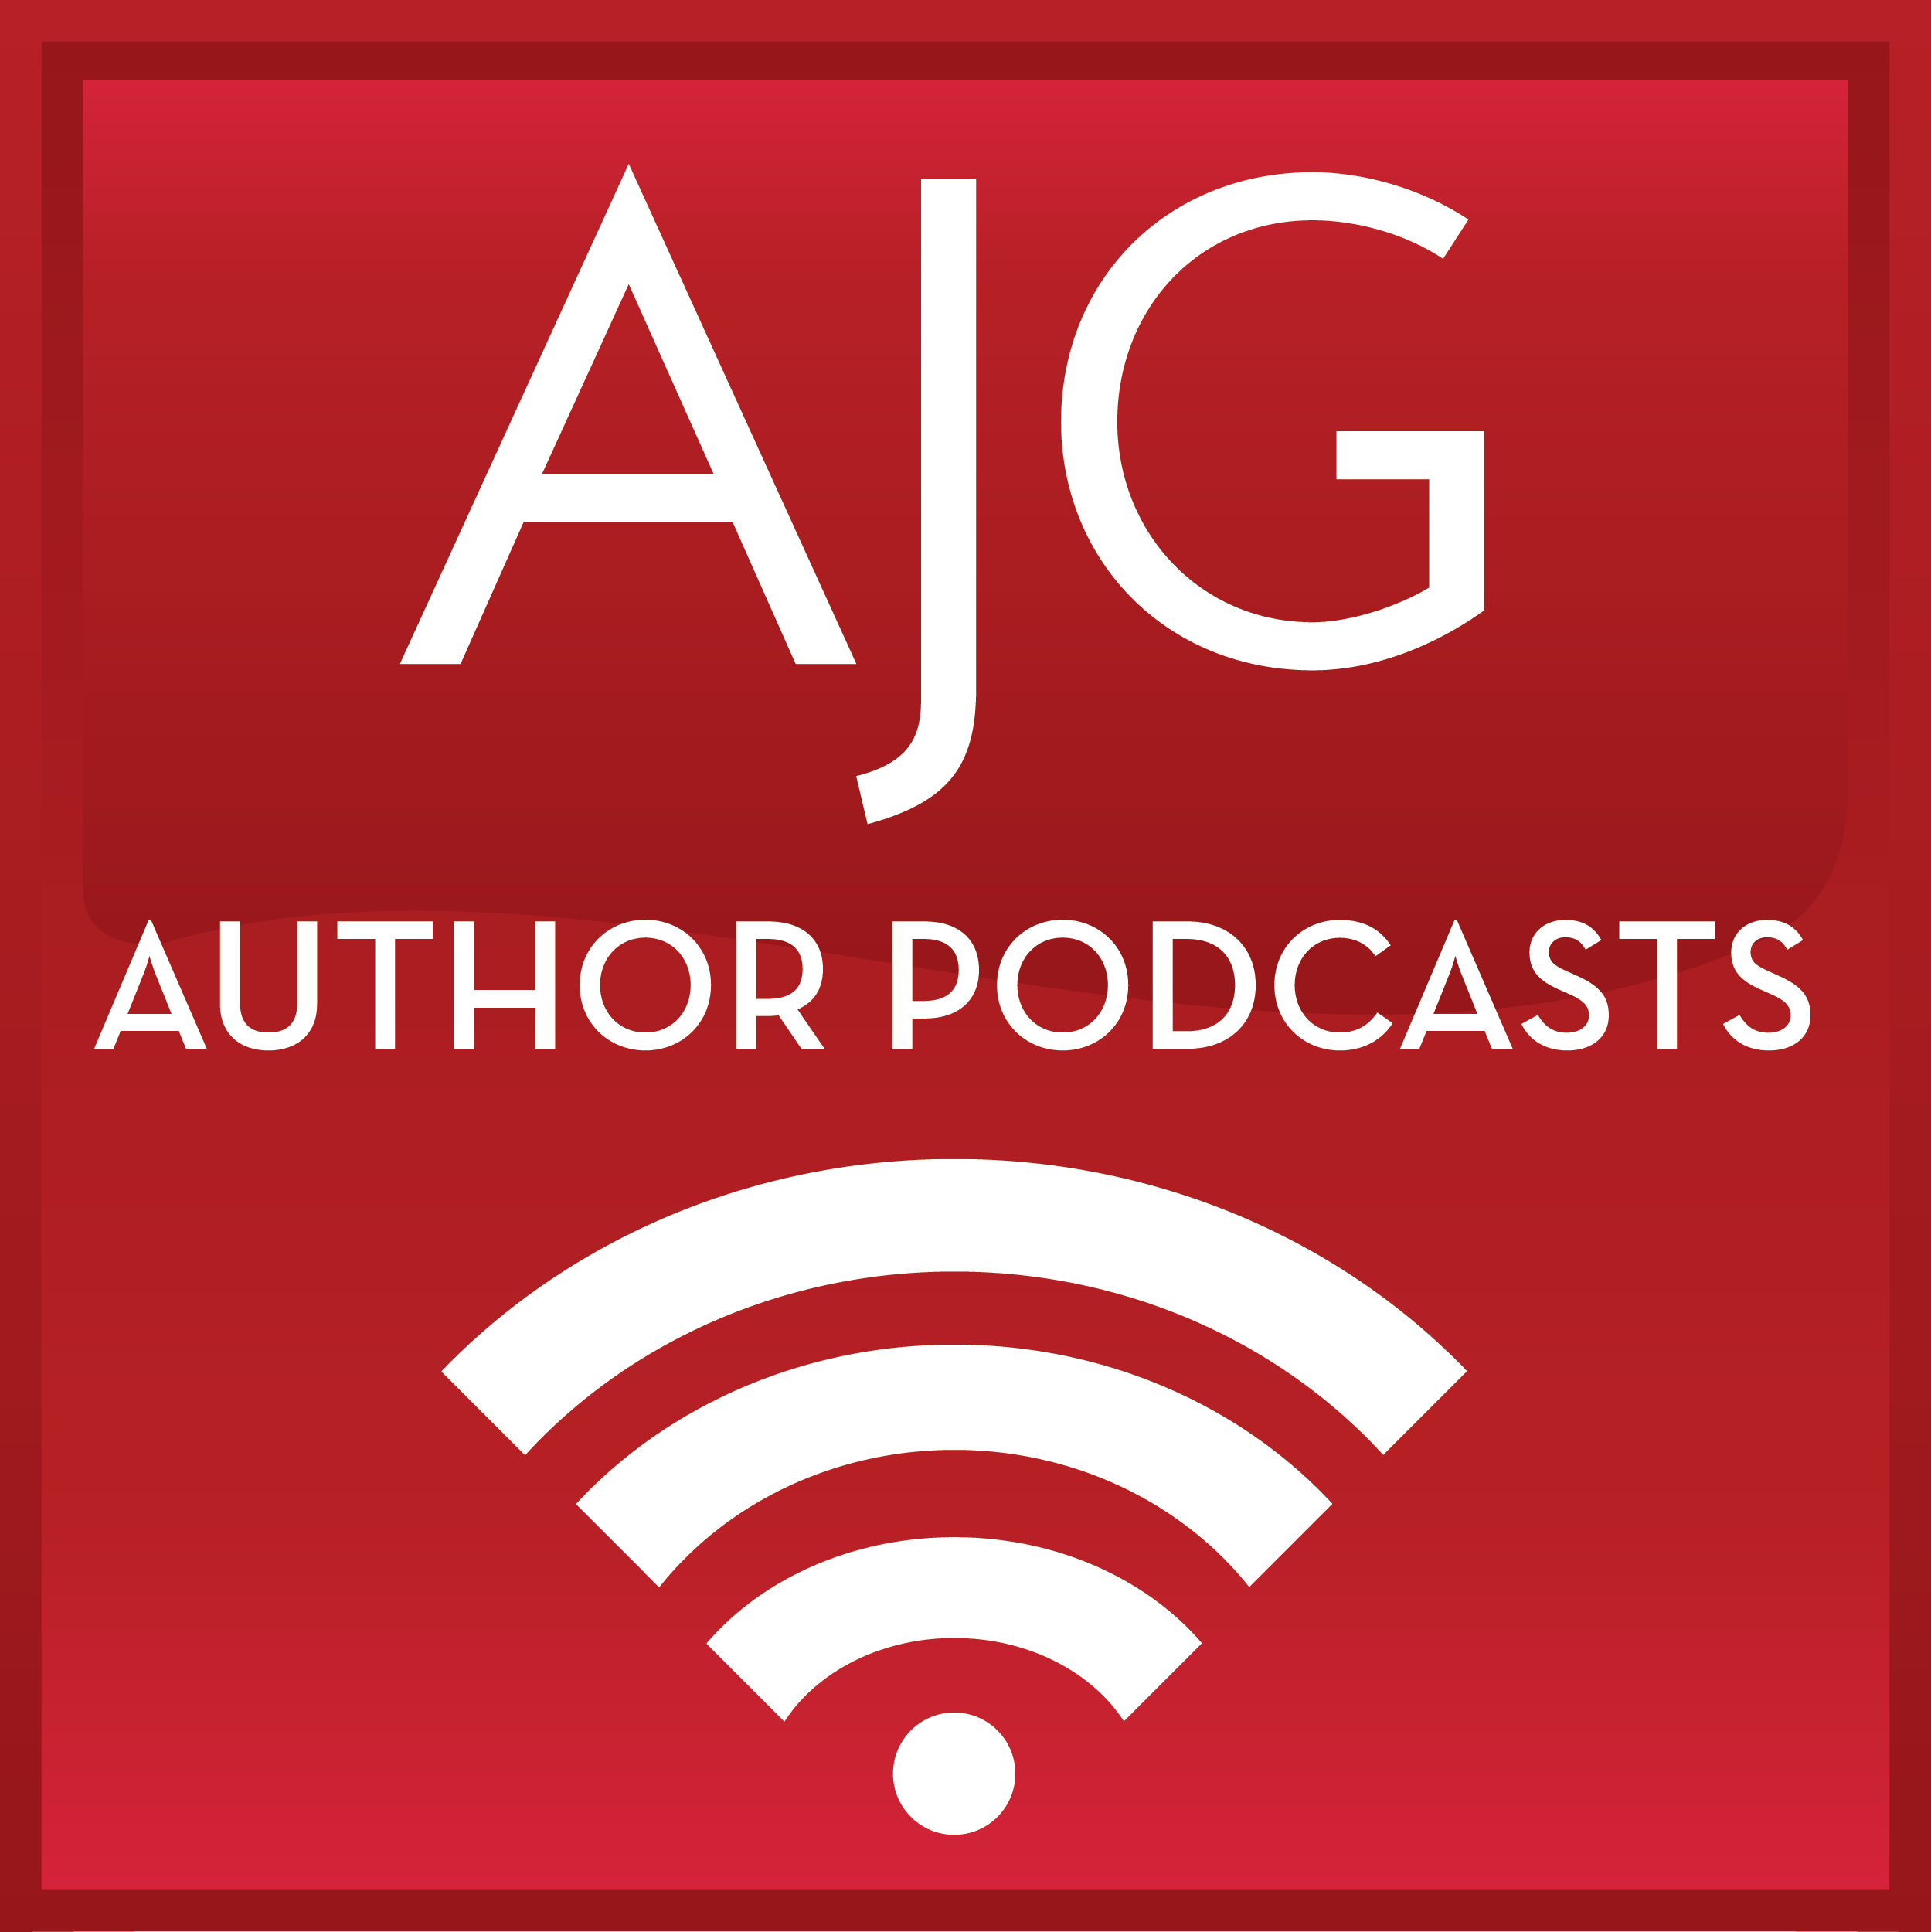 AJG Author Podcasts